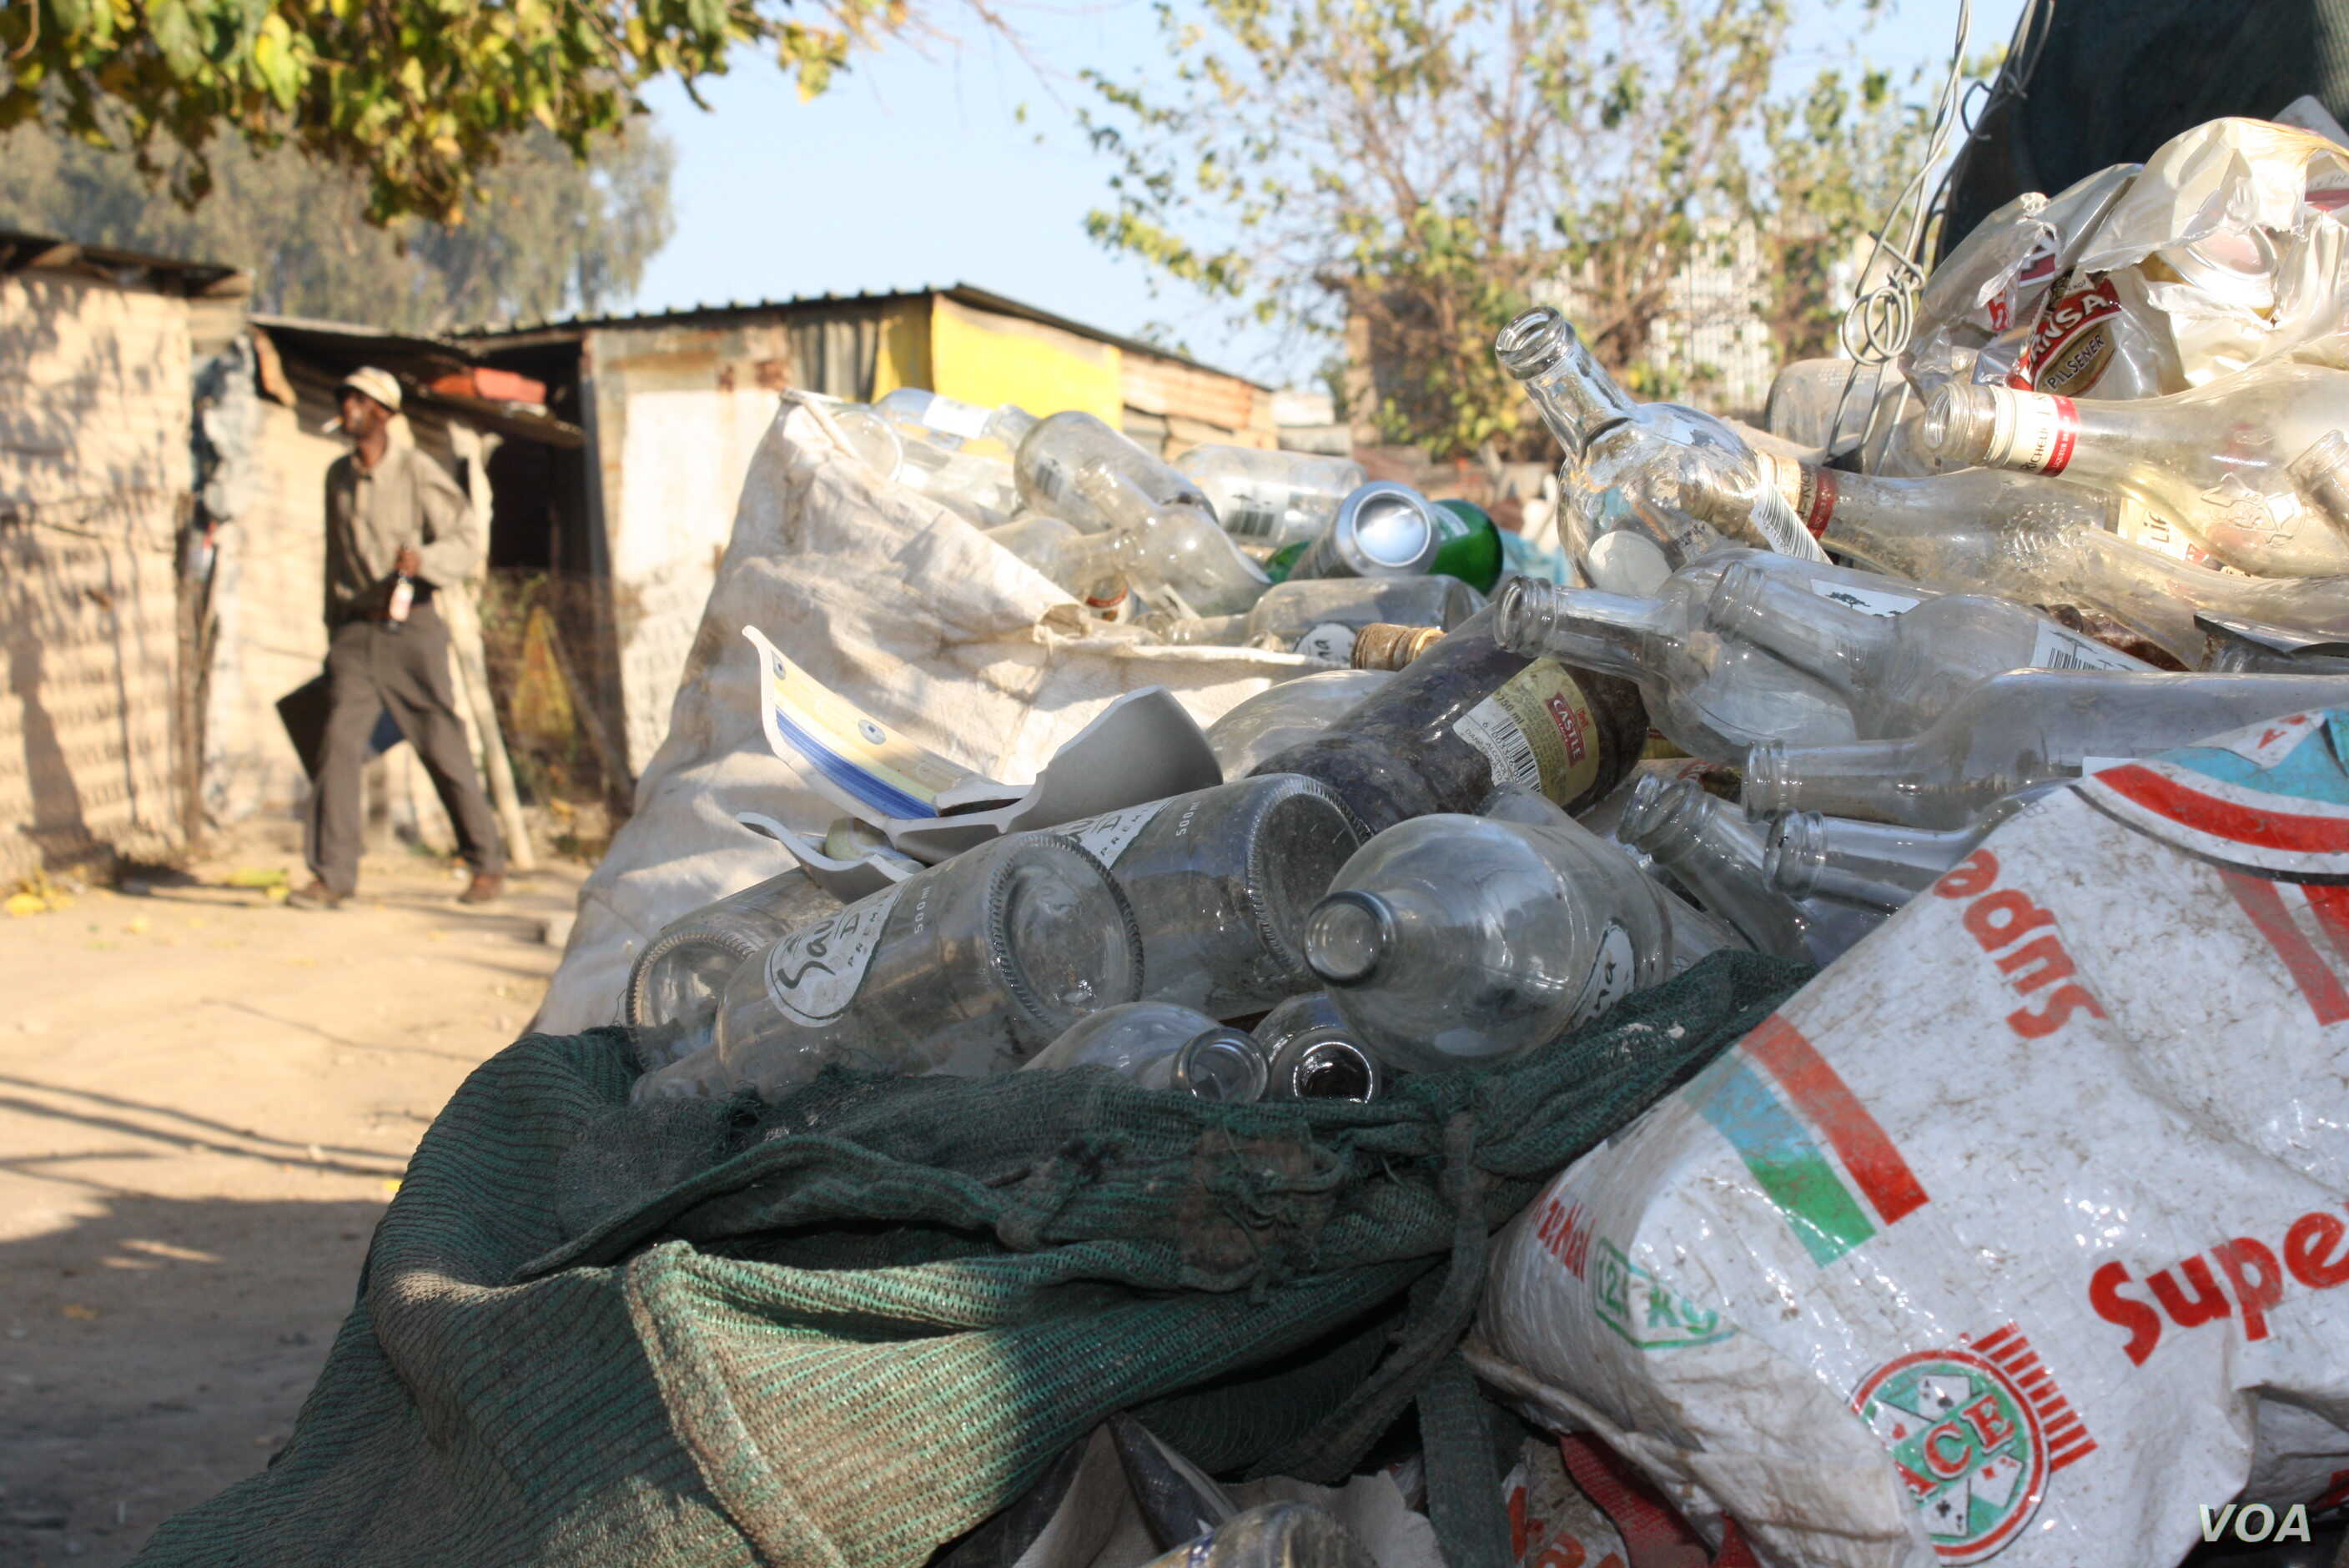 Piles of empty liquor bottles are everywhere in the streets of Diepsloot. (D. Taylor/VOA)